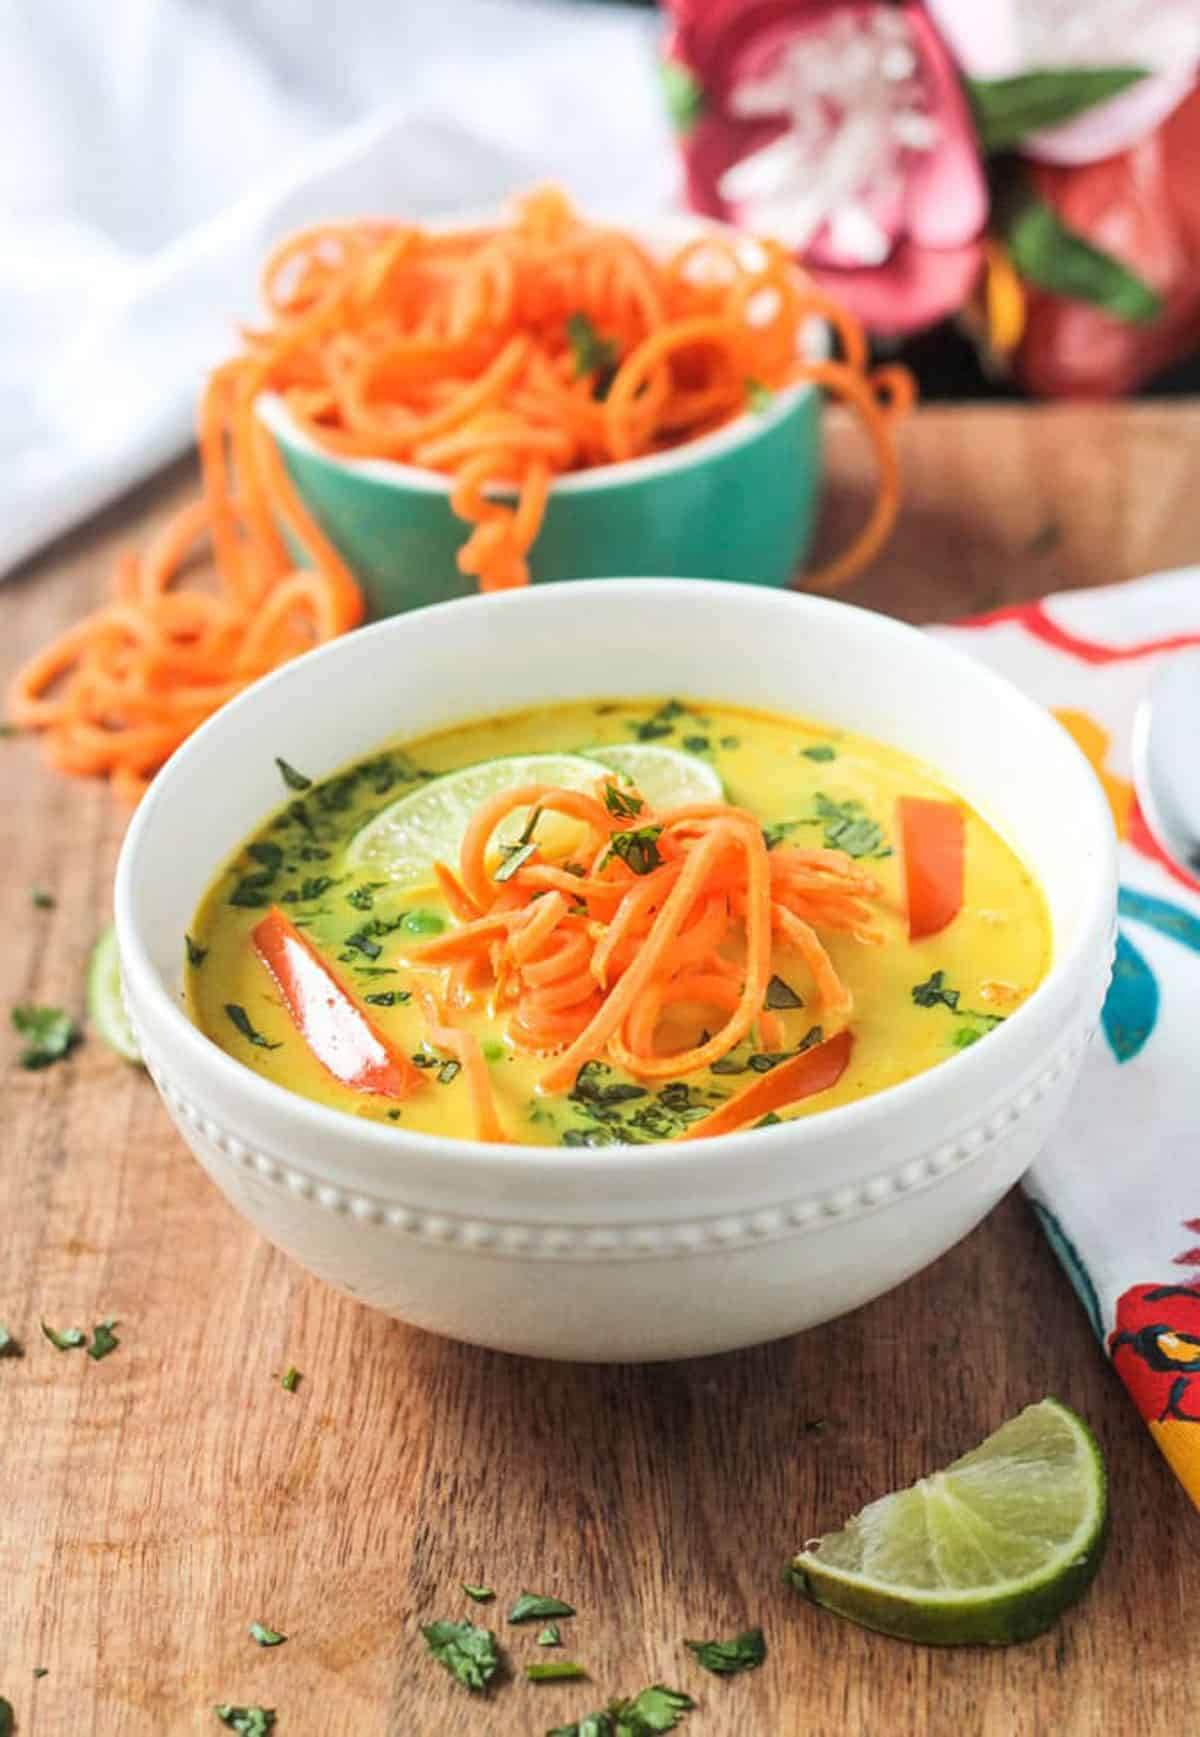 Spiralized sweet potato noodles spilling out of a bowl behind a bowl of soup.